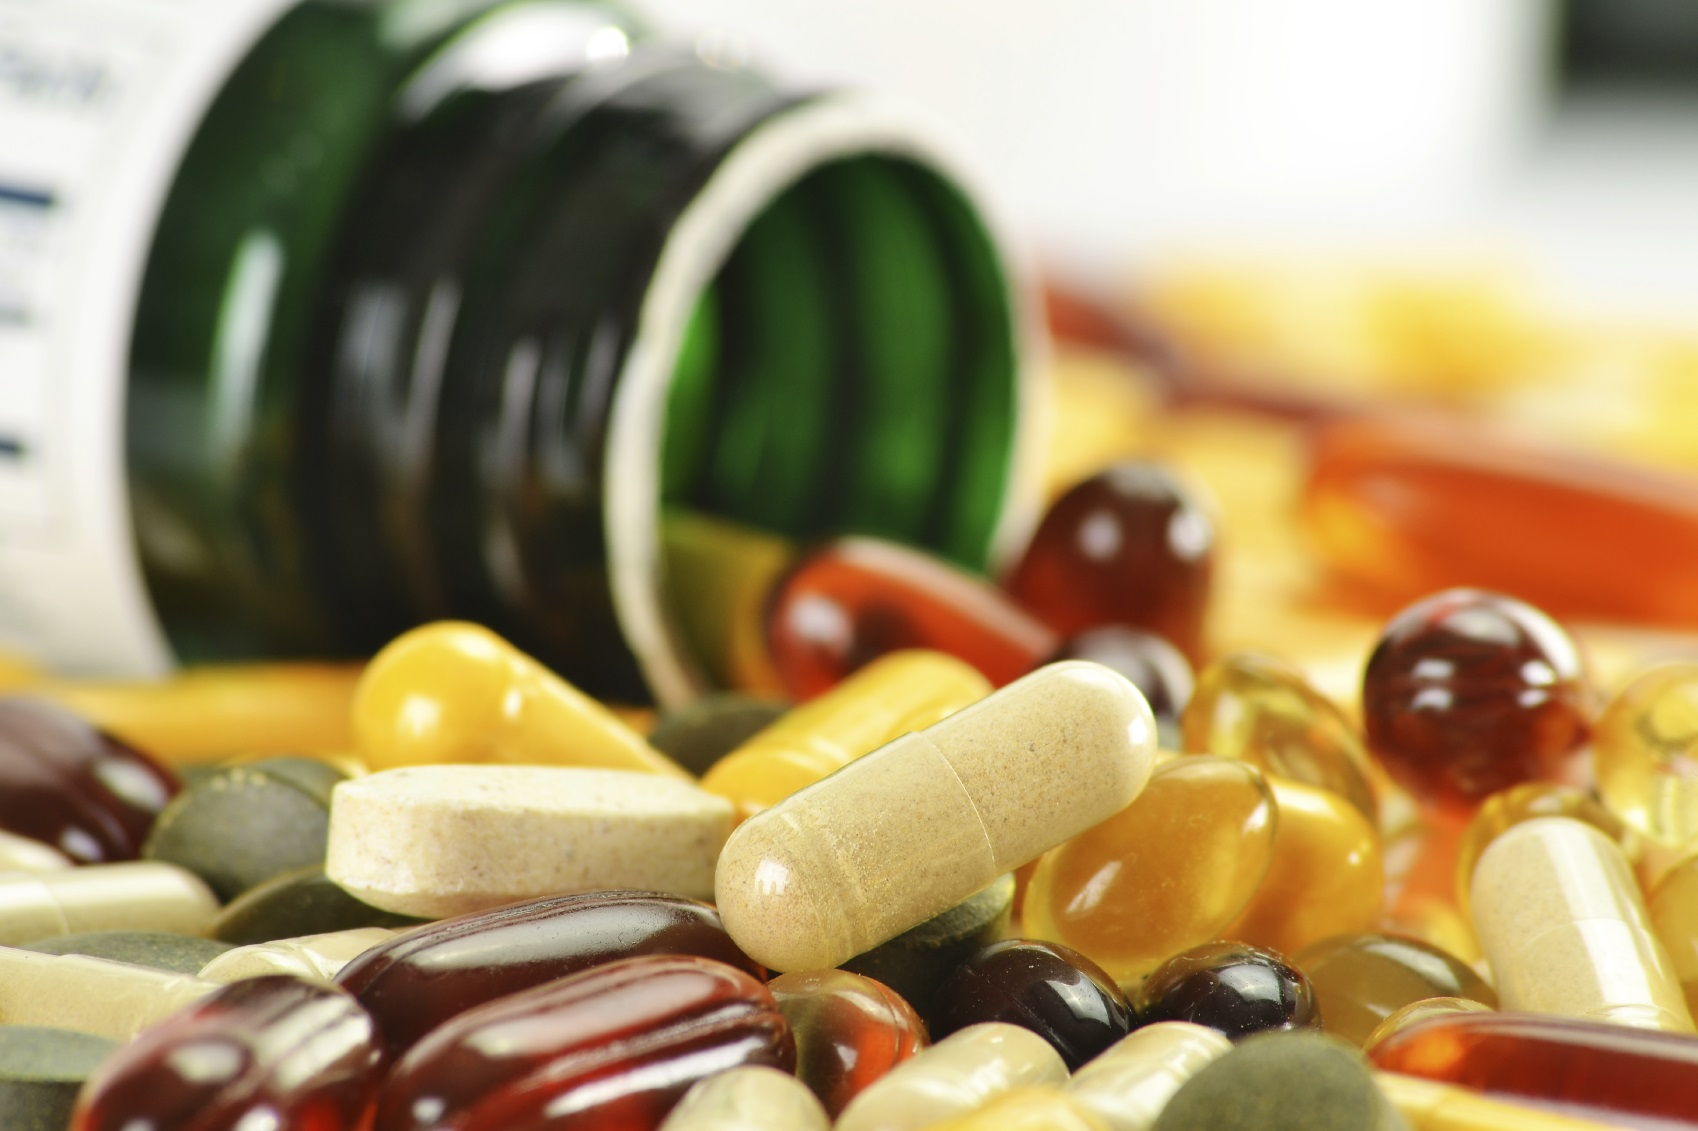 Is Too Much of a Multivitamin a Bad Thing?